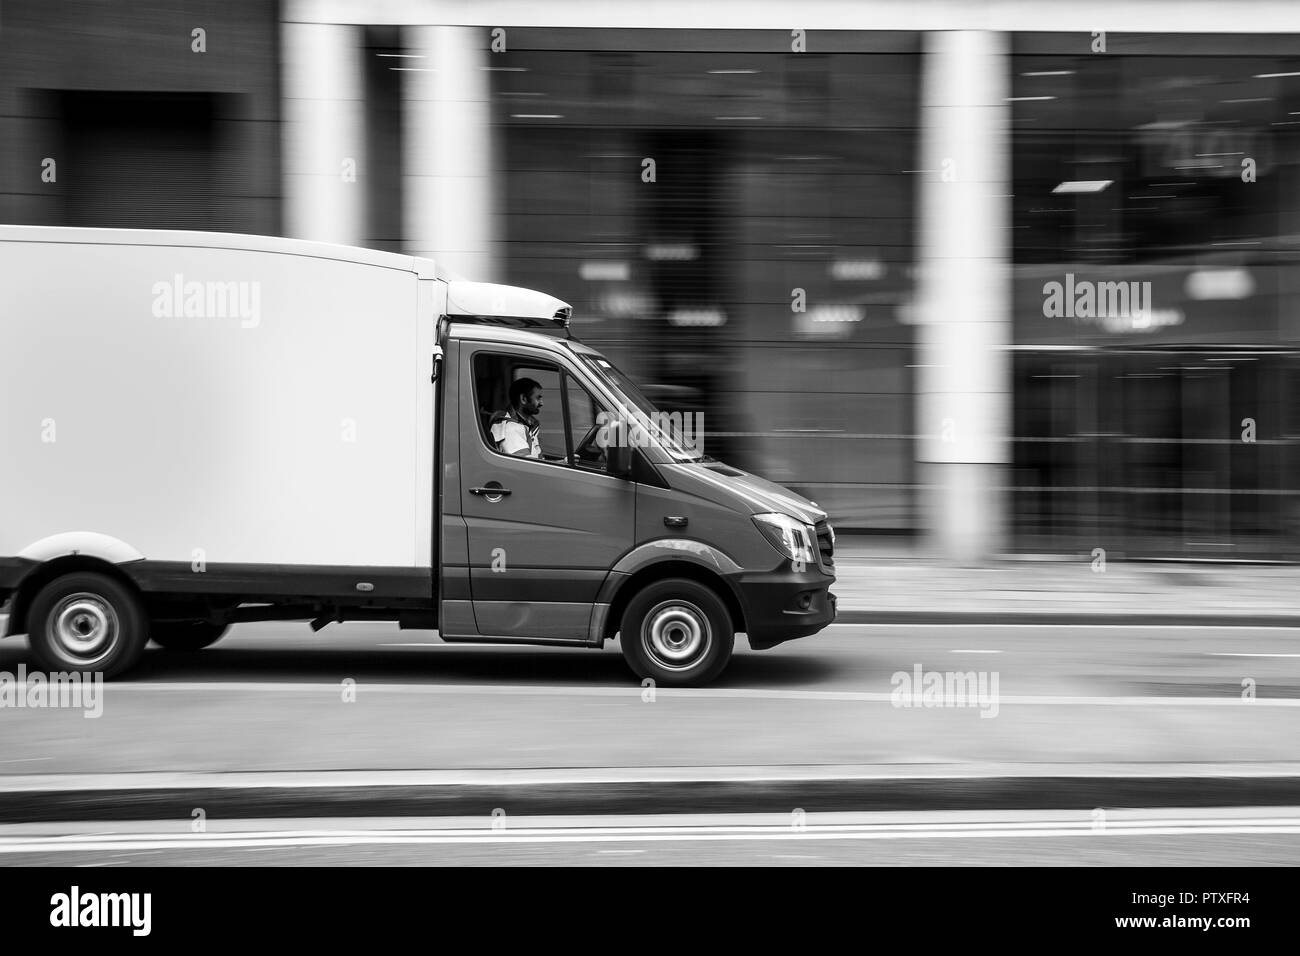 Van speeding in central London in blurred motion. Deliberately blurred to convey speed. - Stock Image